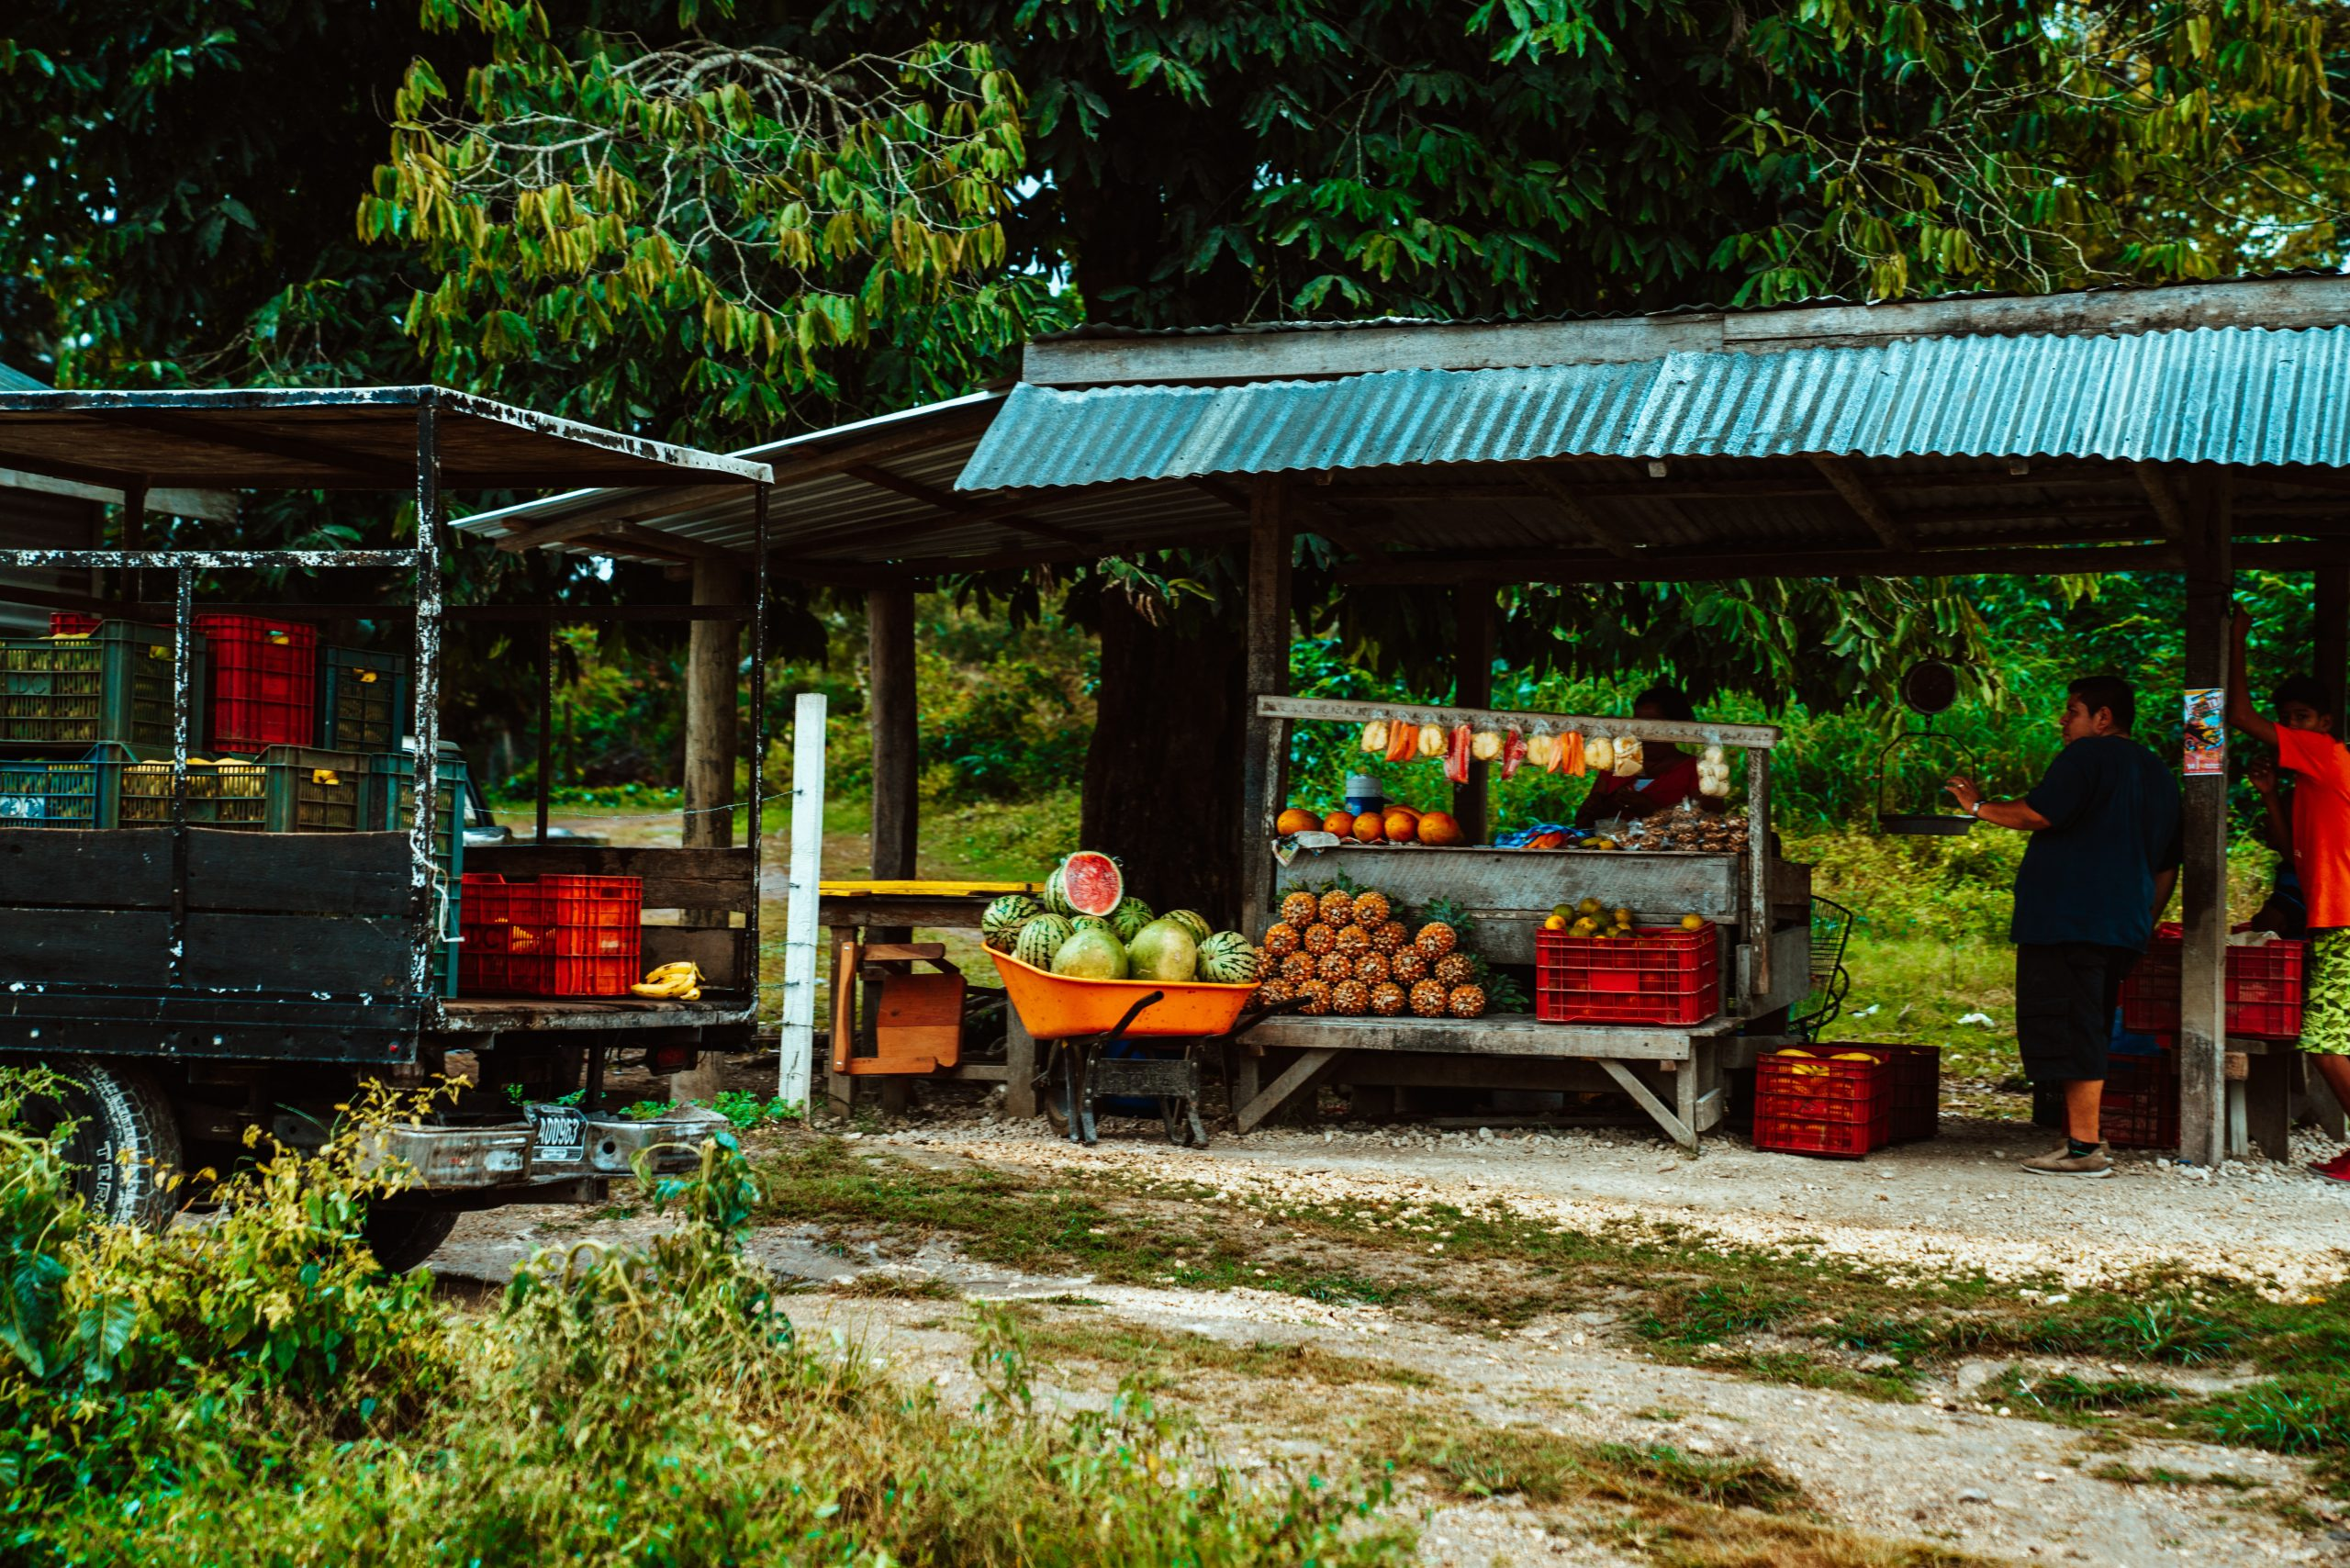 Local Farm Stand Photographed by Meritt Thomas sourced off of Unsplash